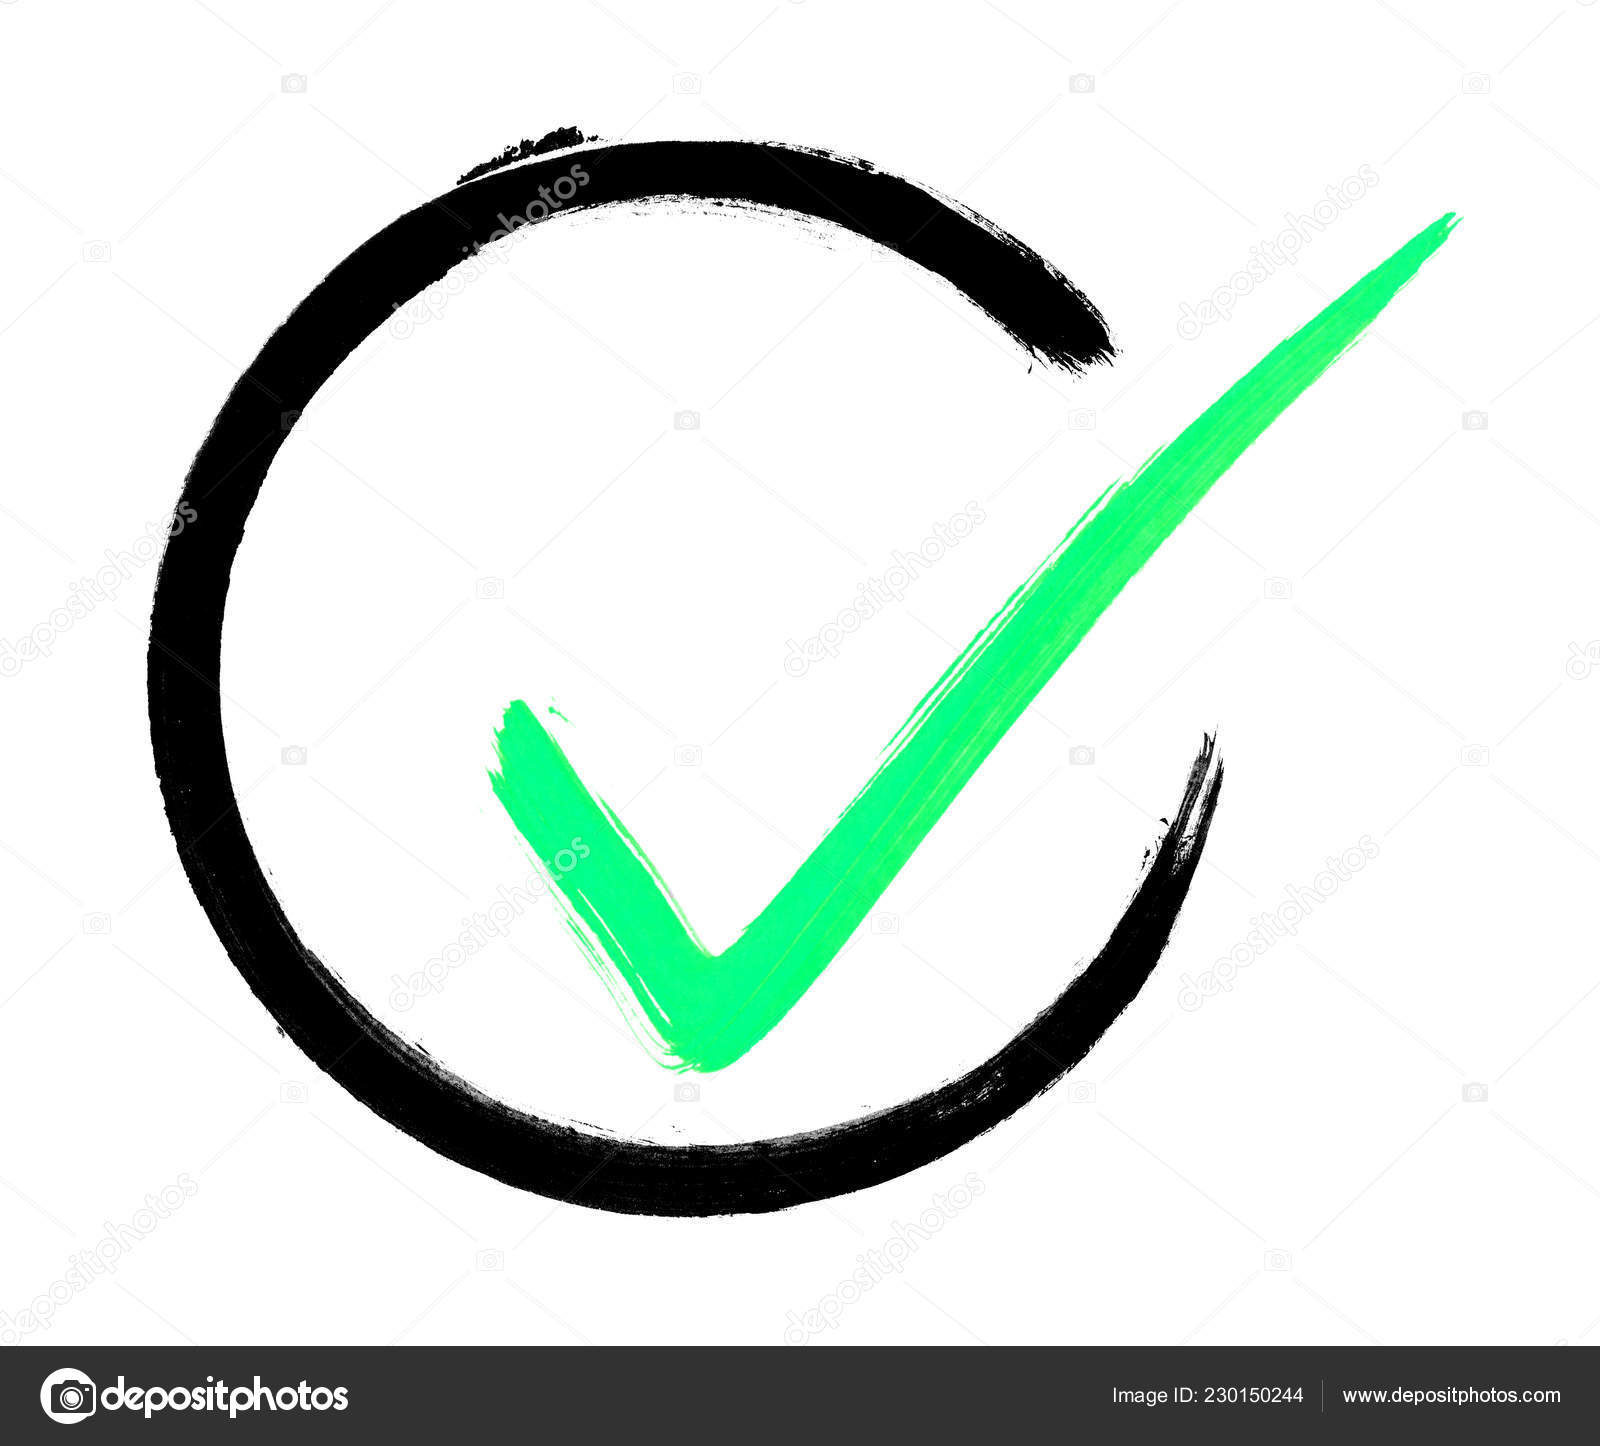 Hand Painted Black Brush Circle Green Tick Symbol — Stock Photo